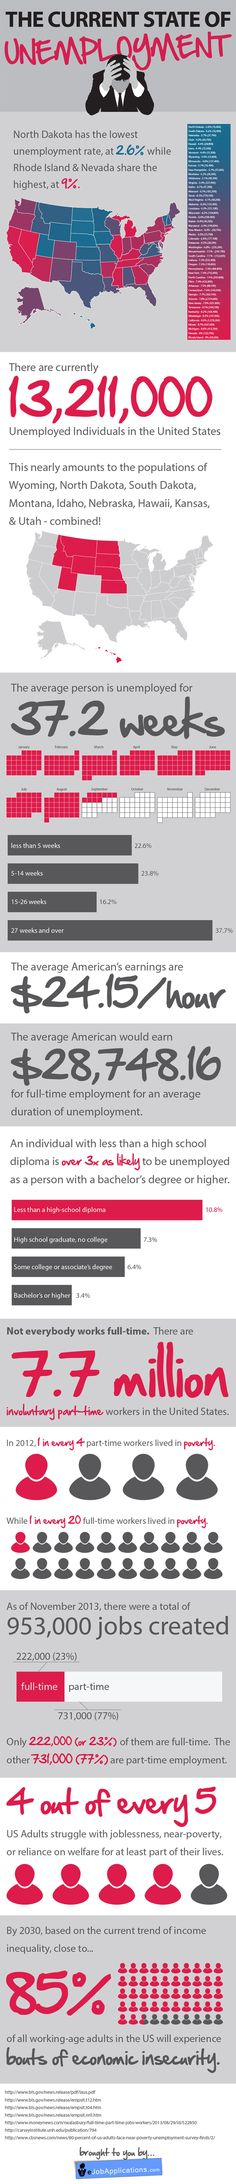 Think unemployment has gotten better? This infographic outlines the current state of unemployment in the US.